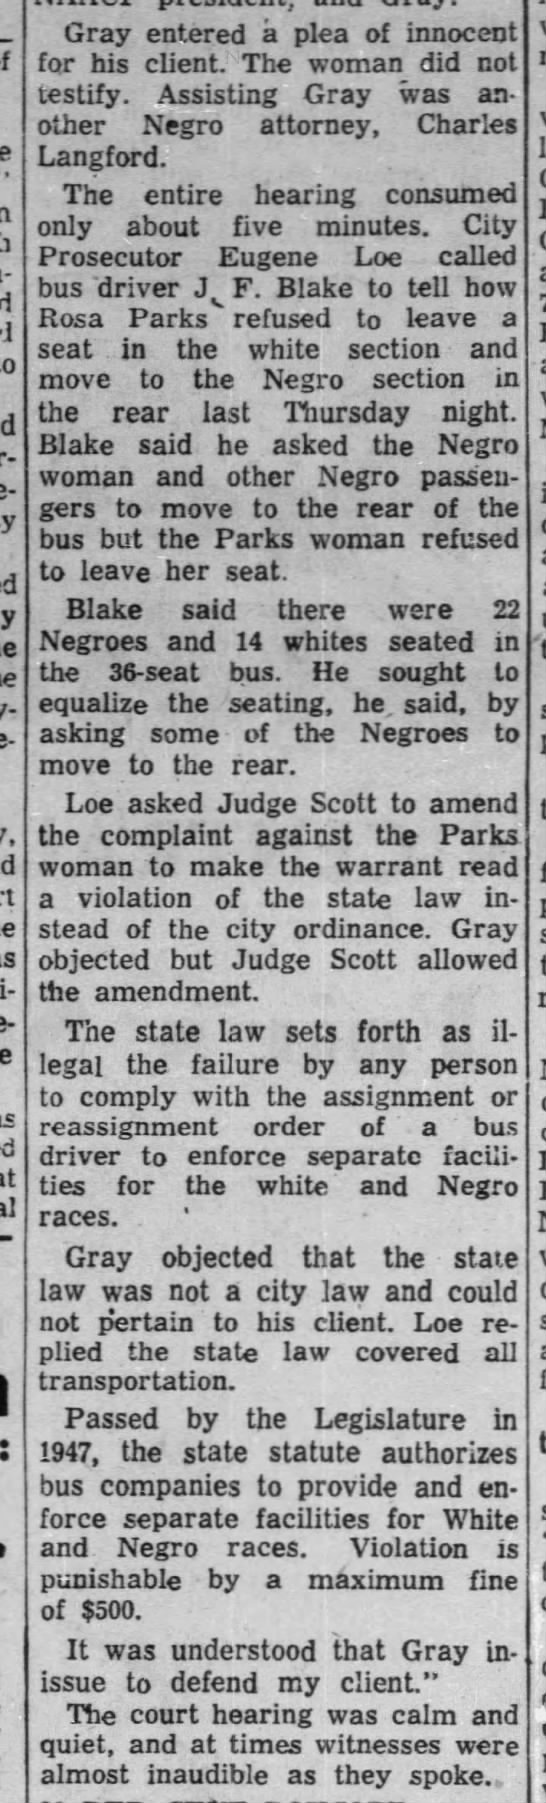 Account of Rosa Park's trial for refusing to give up her seat on the bus -